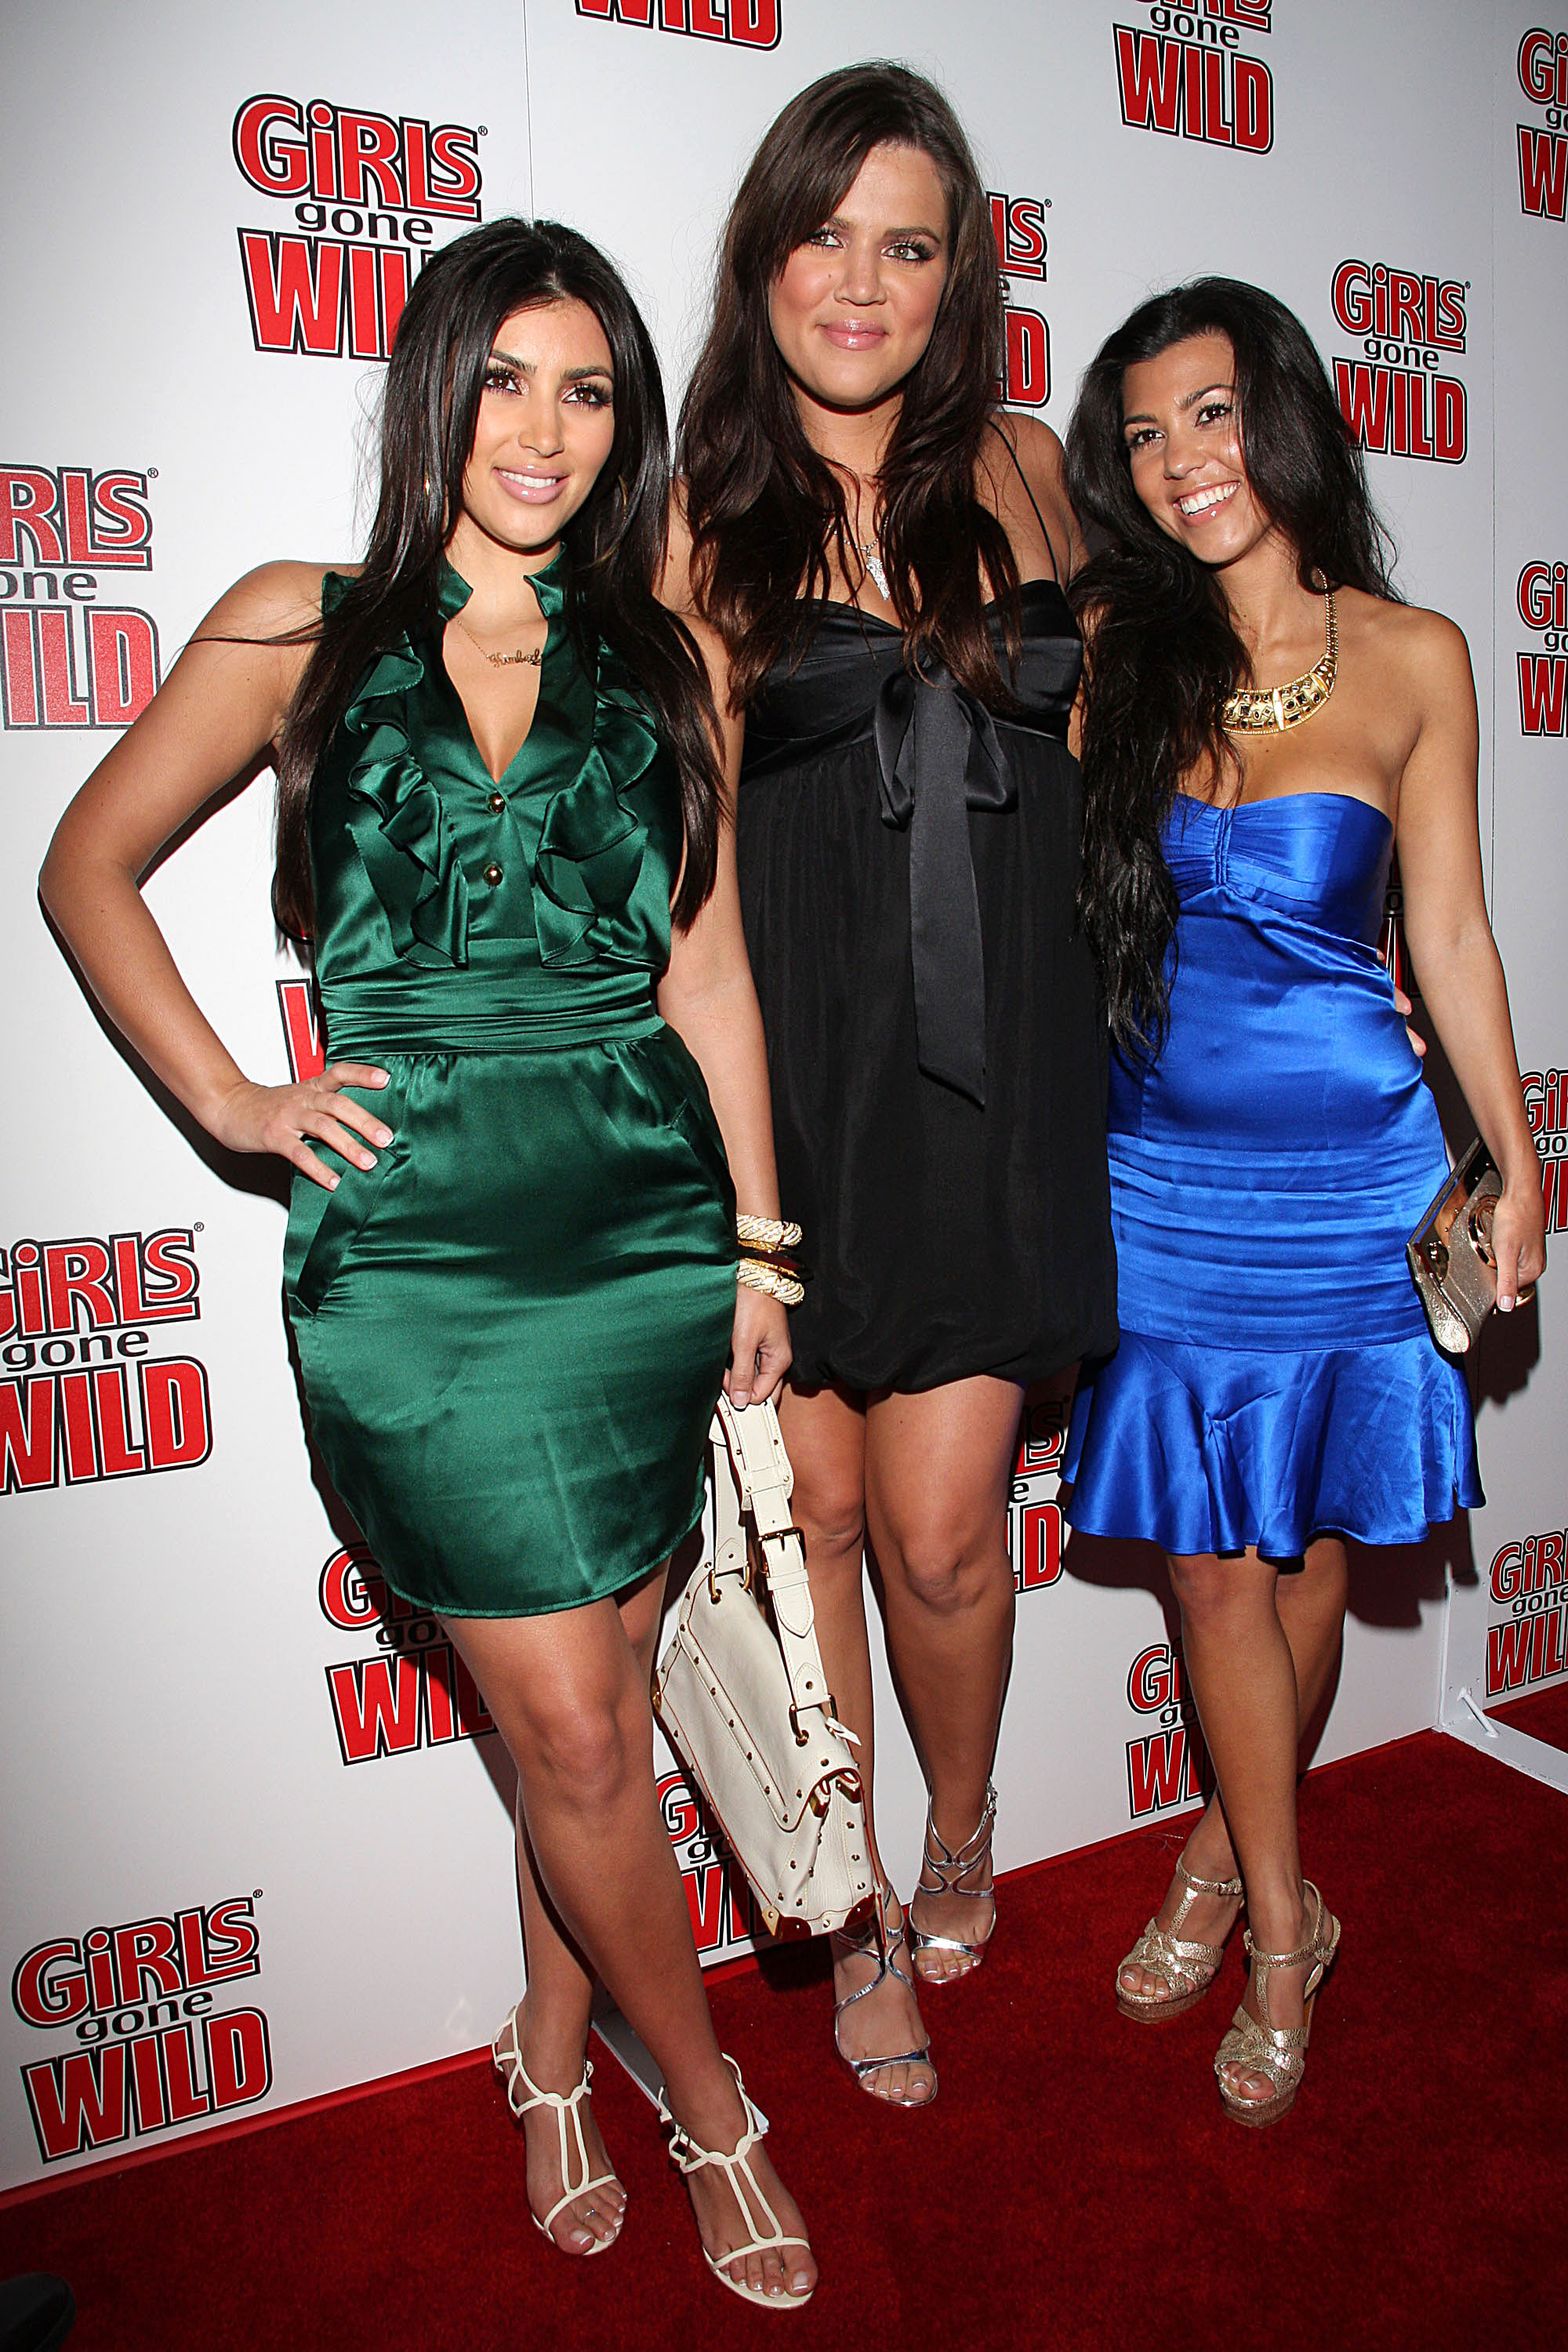 Kim Kardashian, Khloe Kardashian and Kourtney Kardashian Girls Gone Wild magazine launch party at Area West Hollywood, California - 22.04.08  Where: United States When: 22 Apr 2008 Credit: Rachel Worth / WENN